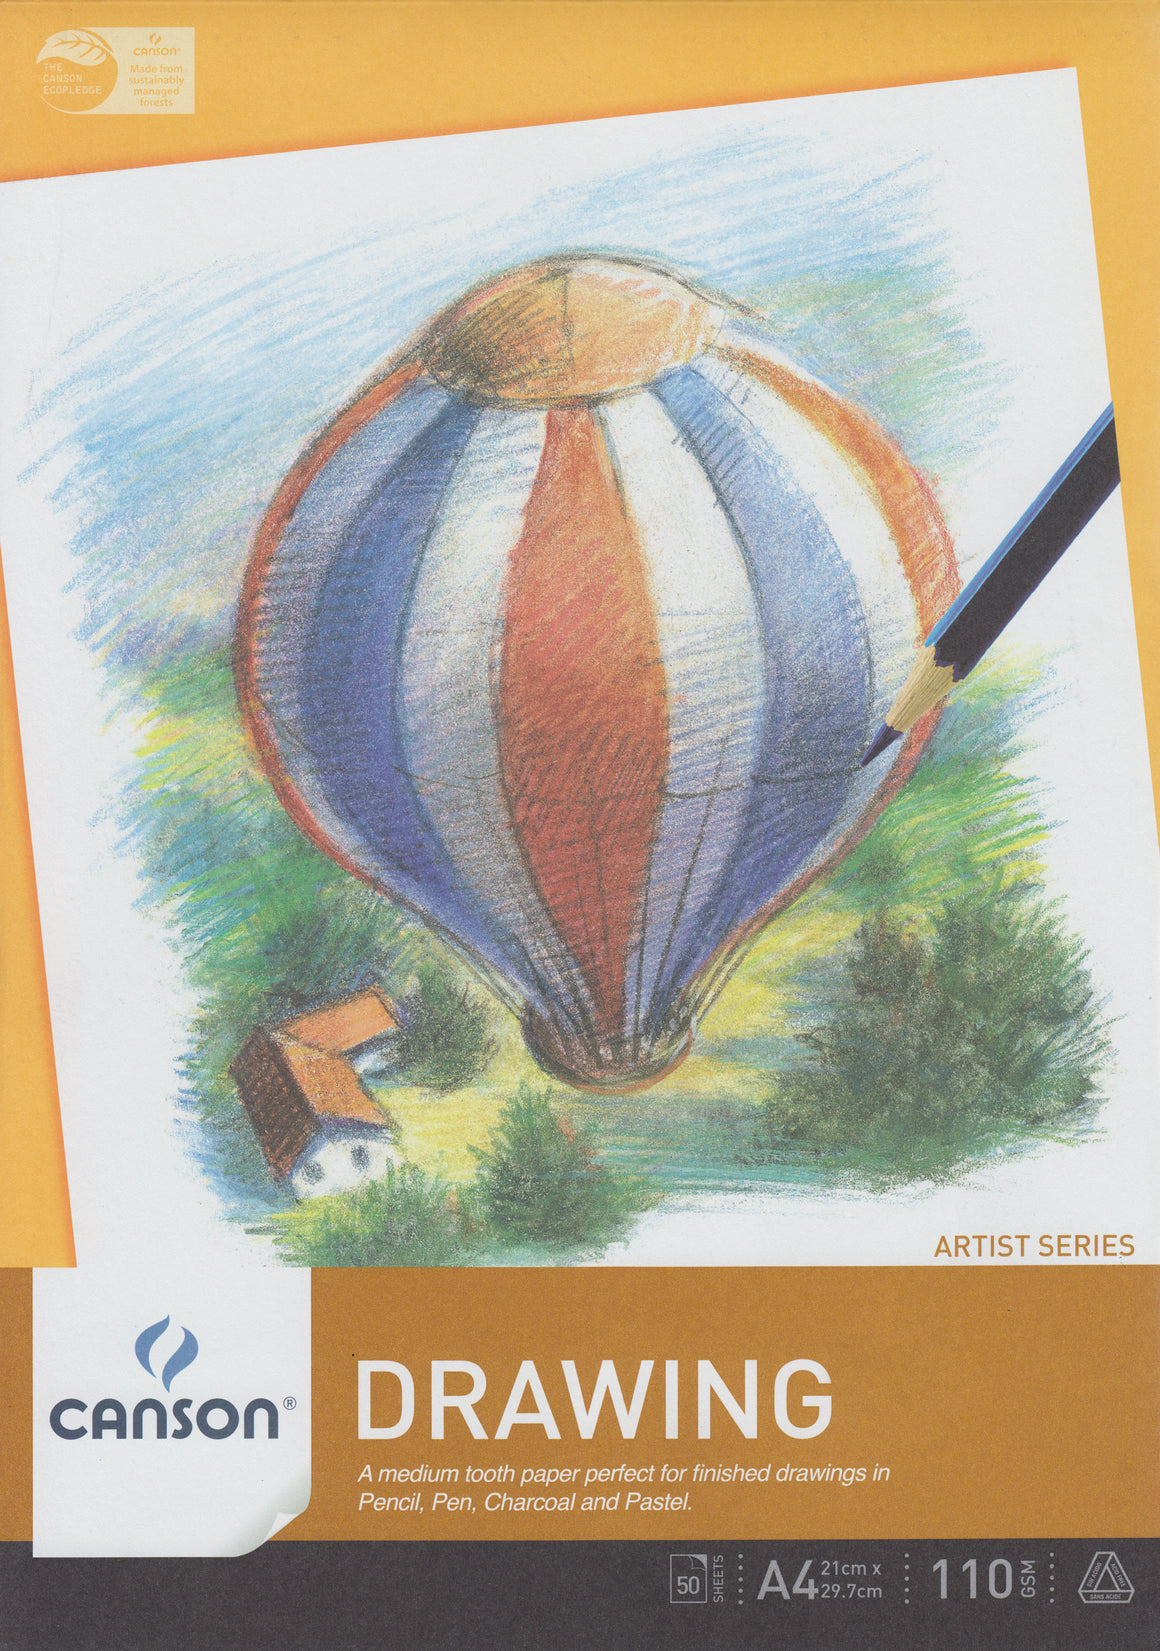 Canson A4 Drawing Pad